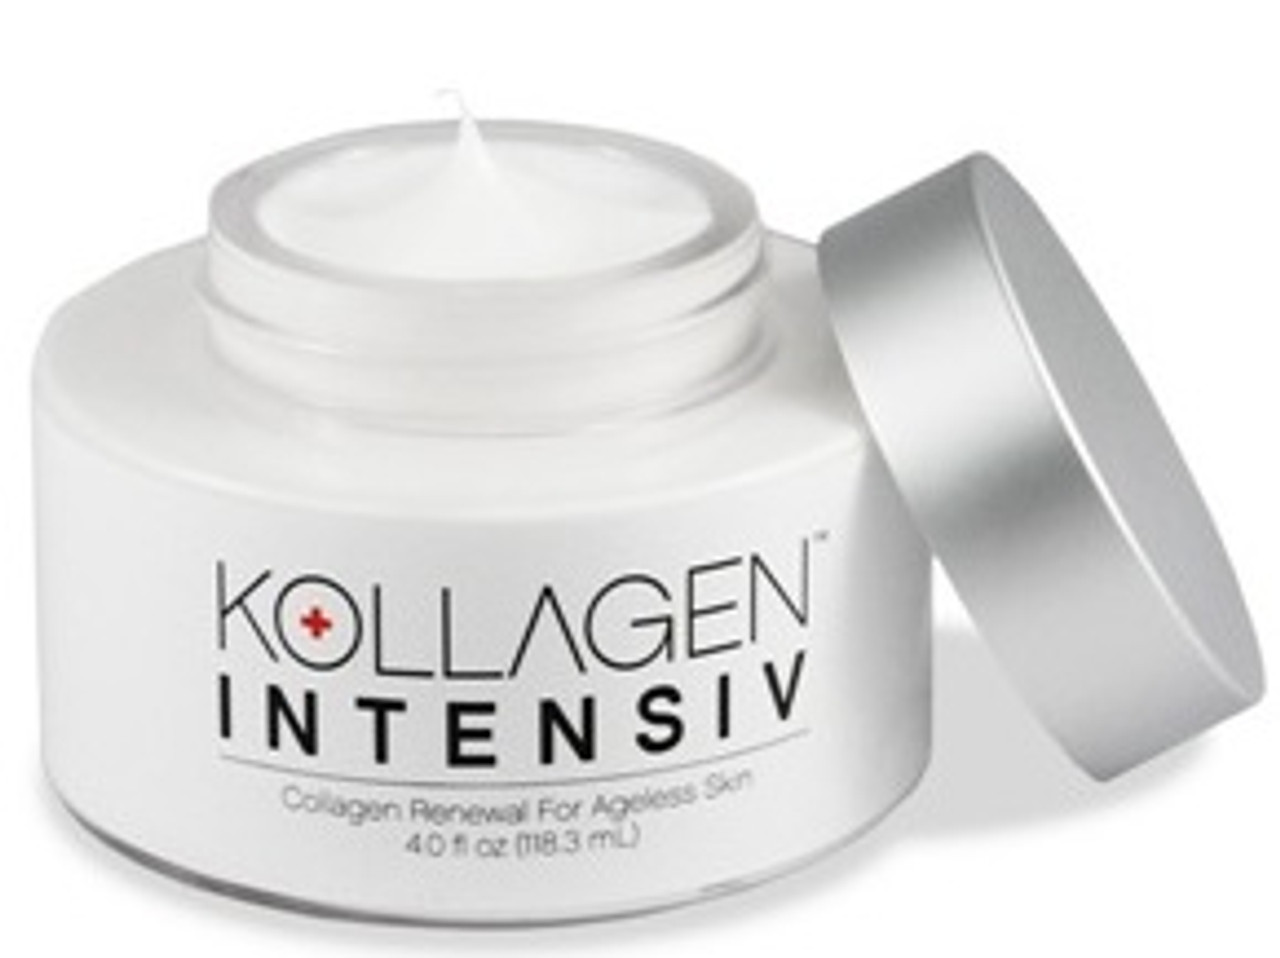 Kollagen Intensiv™ by Skinception